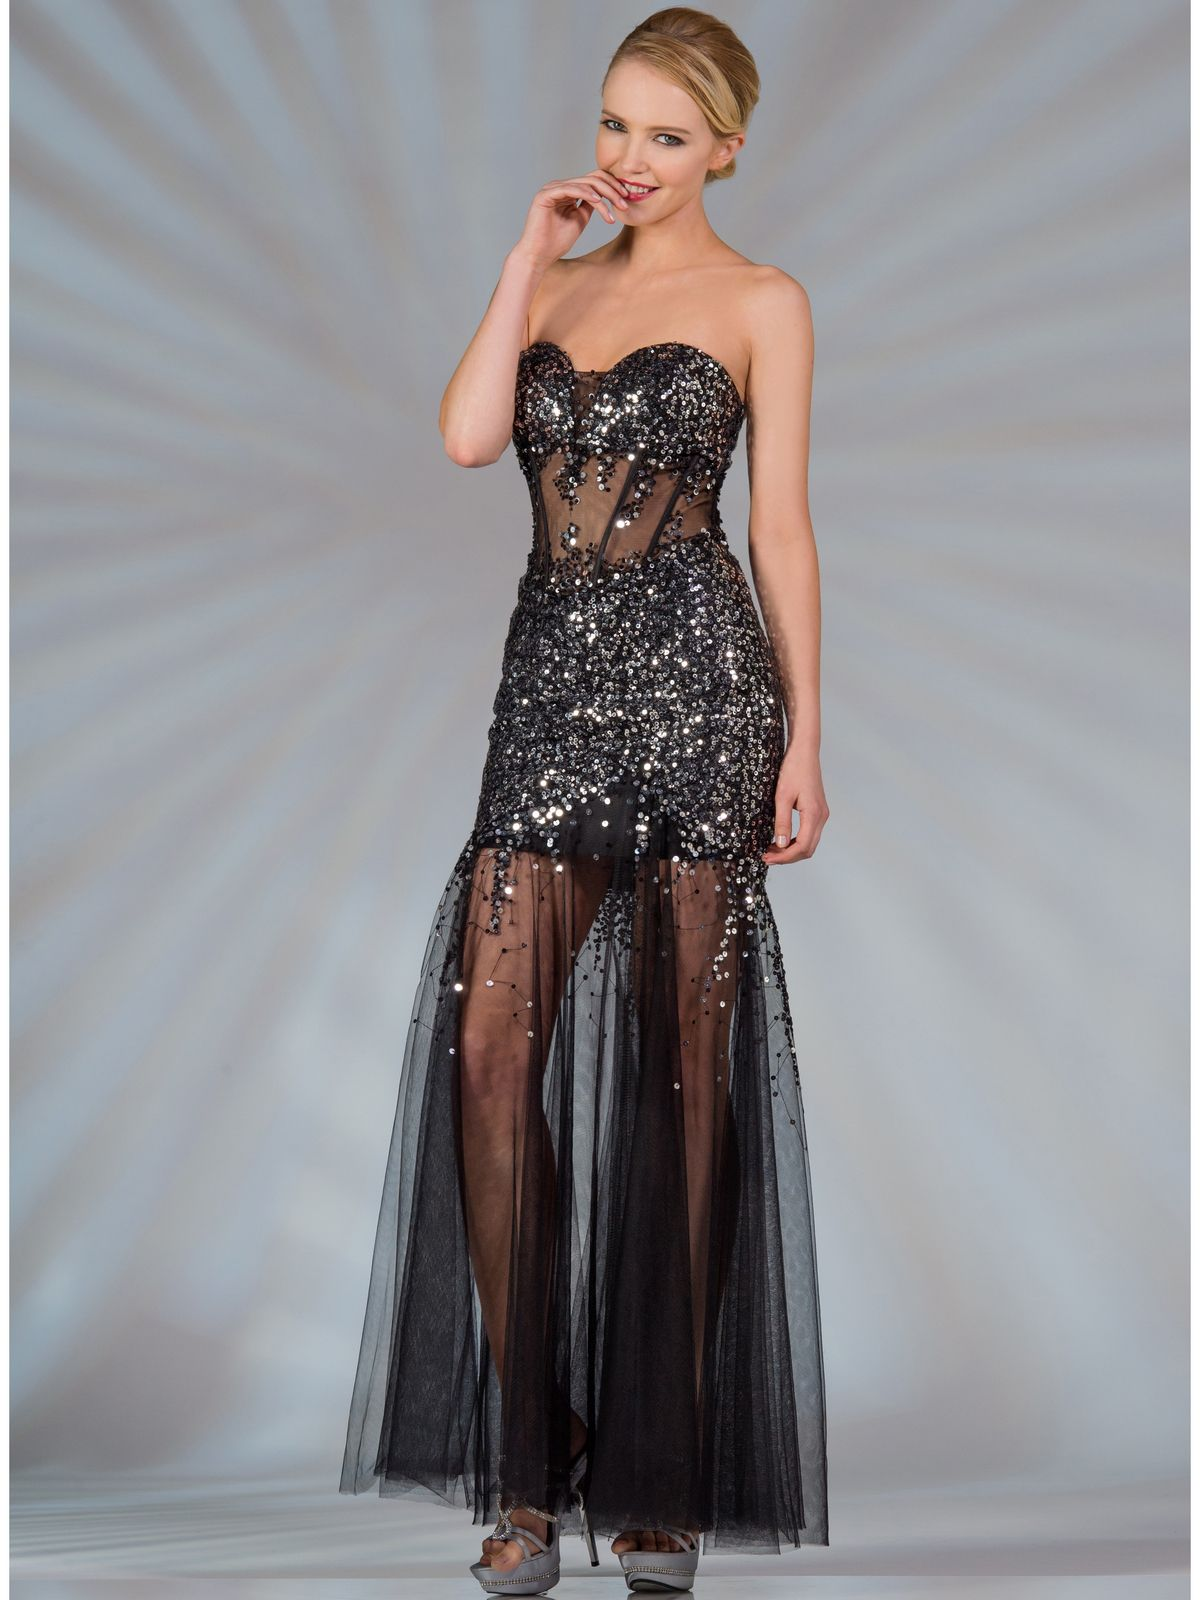 Sheer Sequined Corset Dress. Style